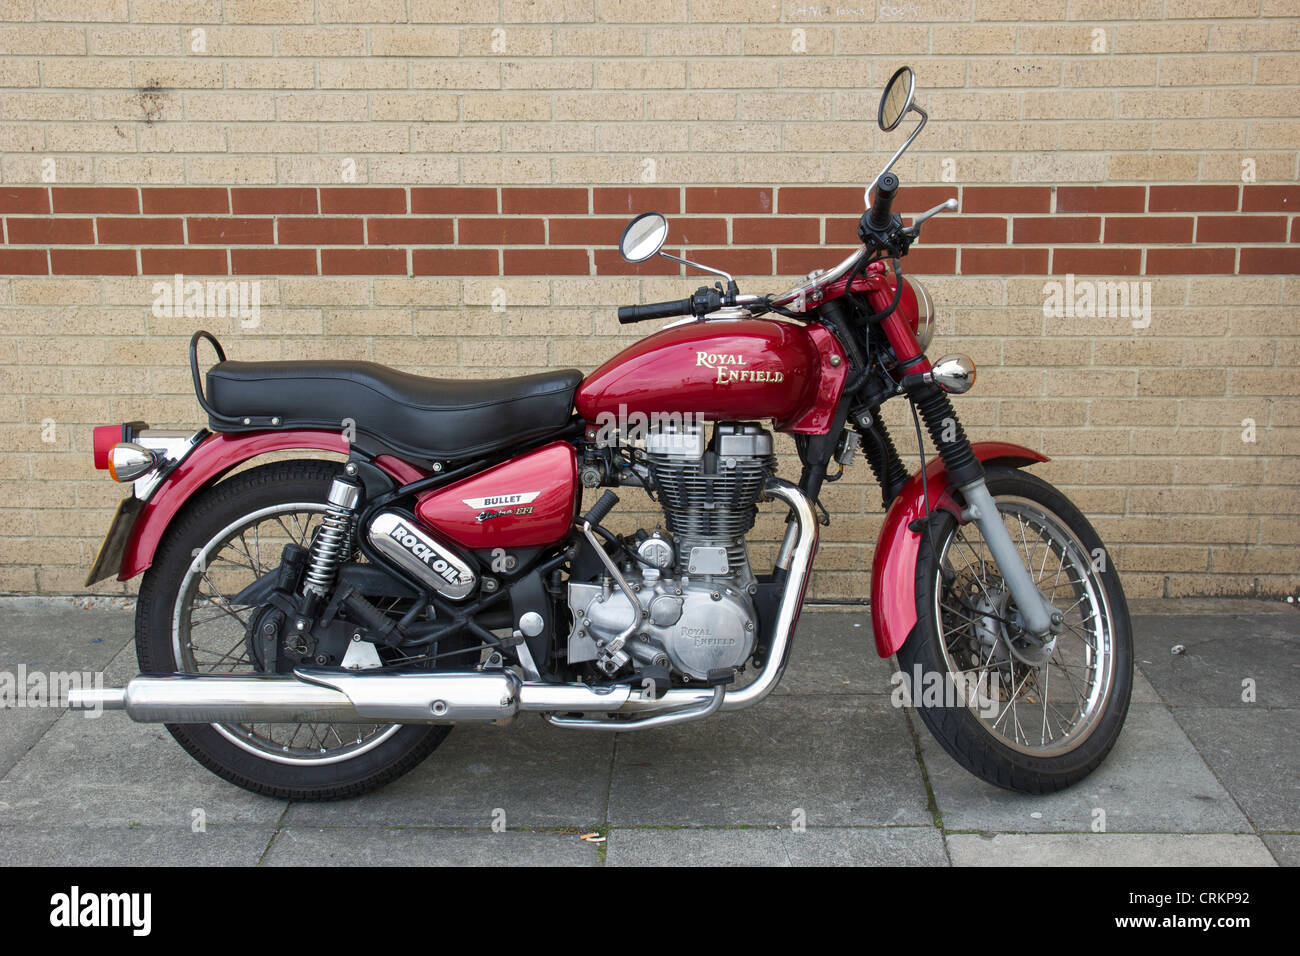 Royal Enfield Bullet Motorcycle British Designed Manufactured in India - Stock Image